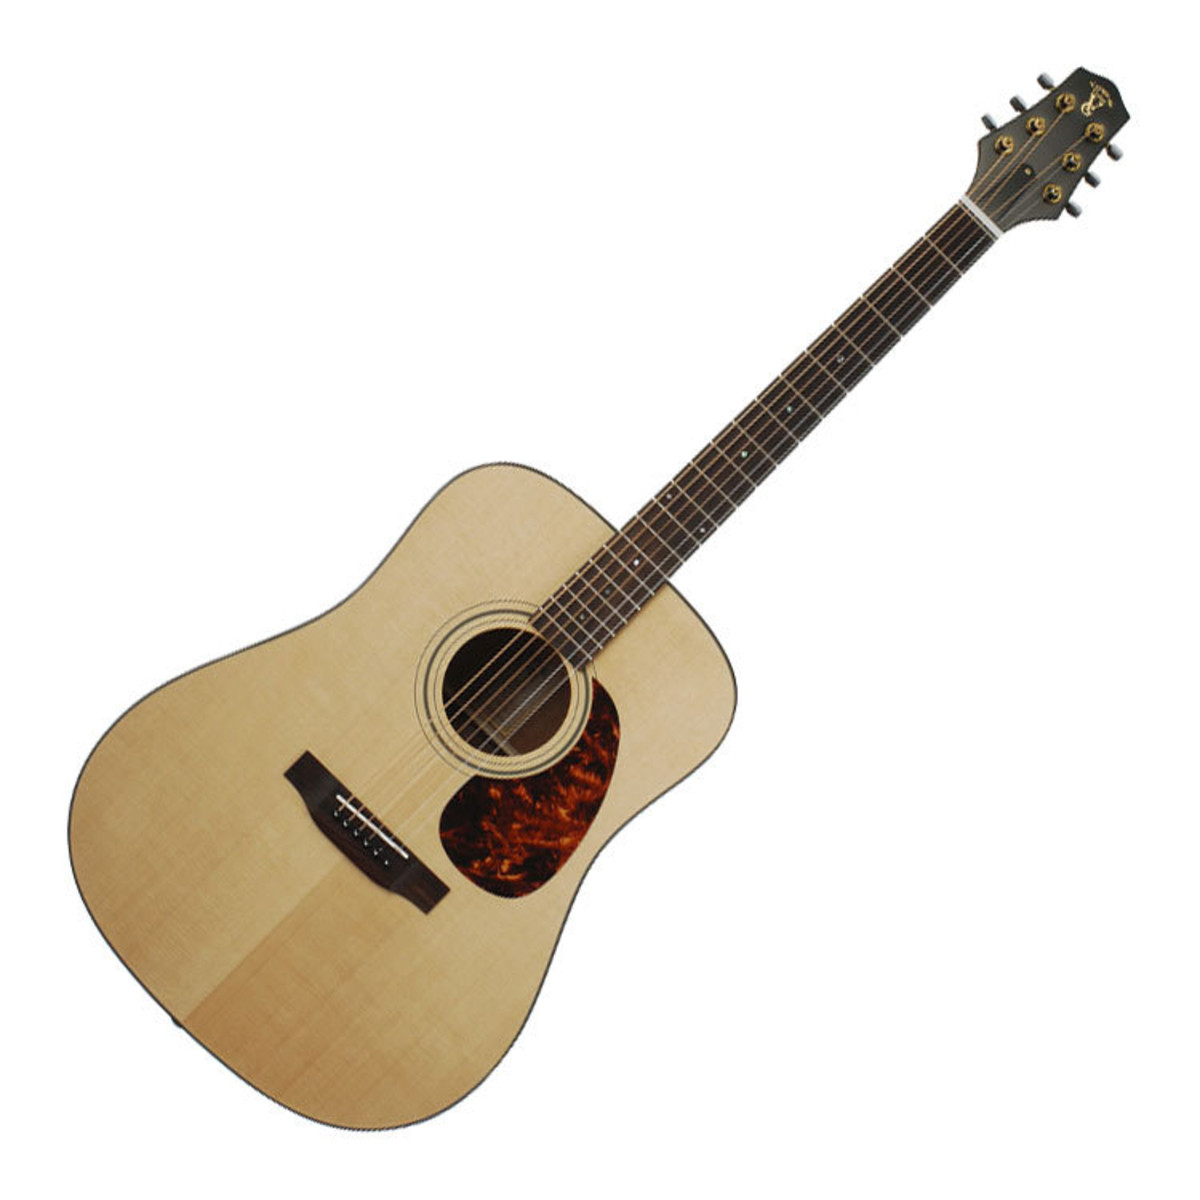 voyage air vad 1 folding acoustic travel guitar at gear4music. Black Bedroom Furniture Sets. Home Design Ideas